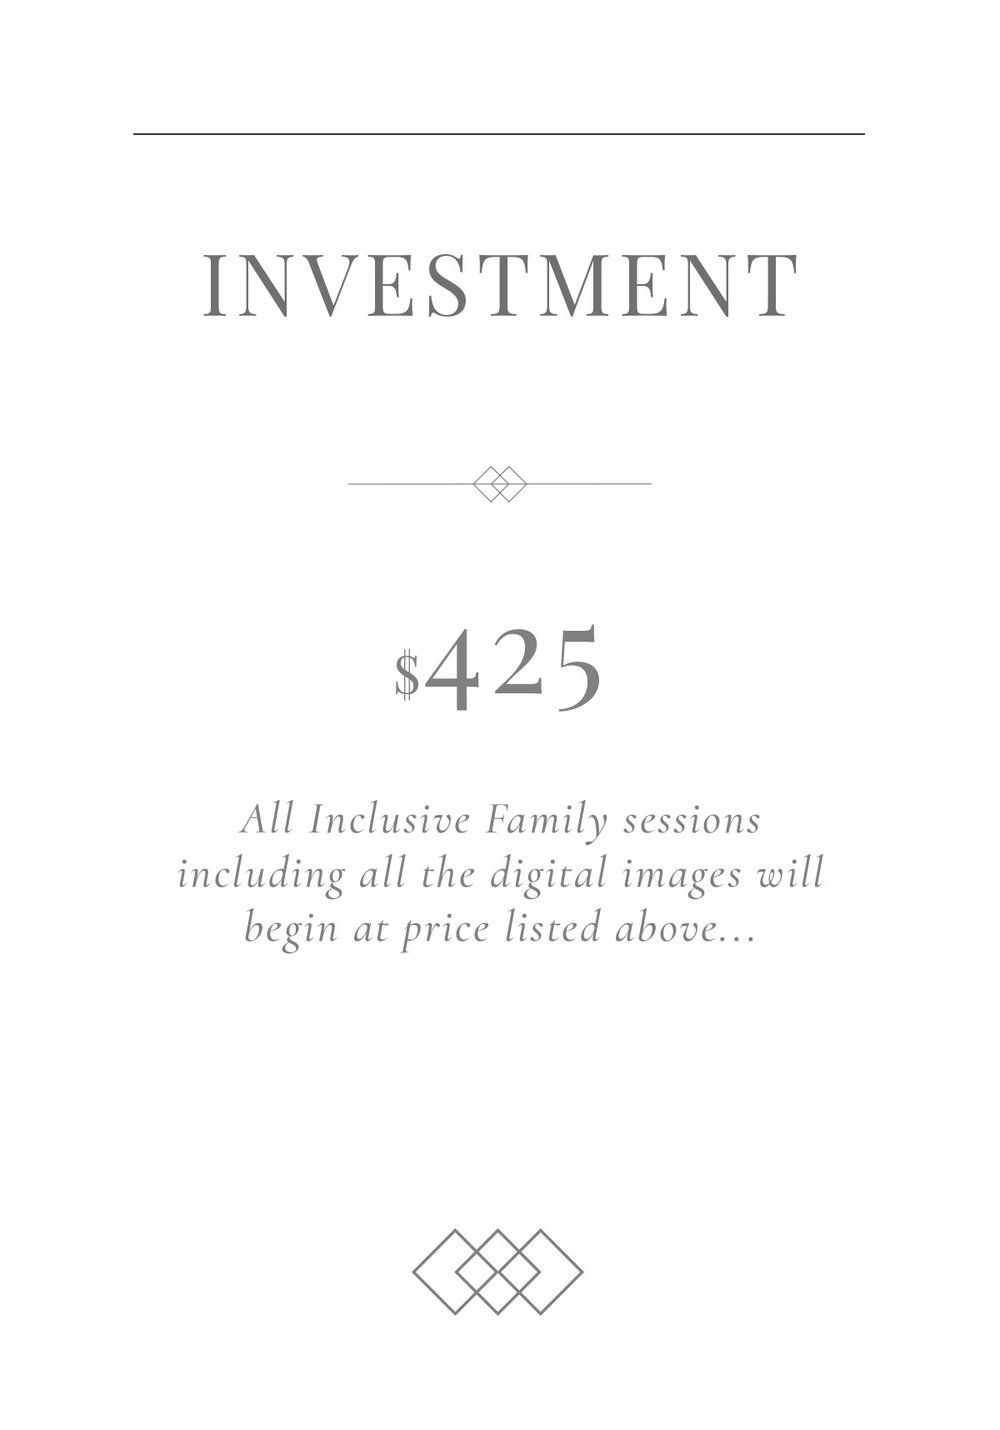 family-investment-button-main.jpg